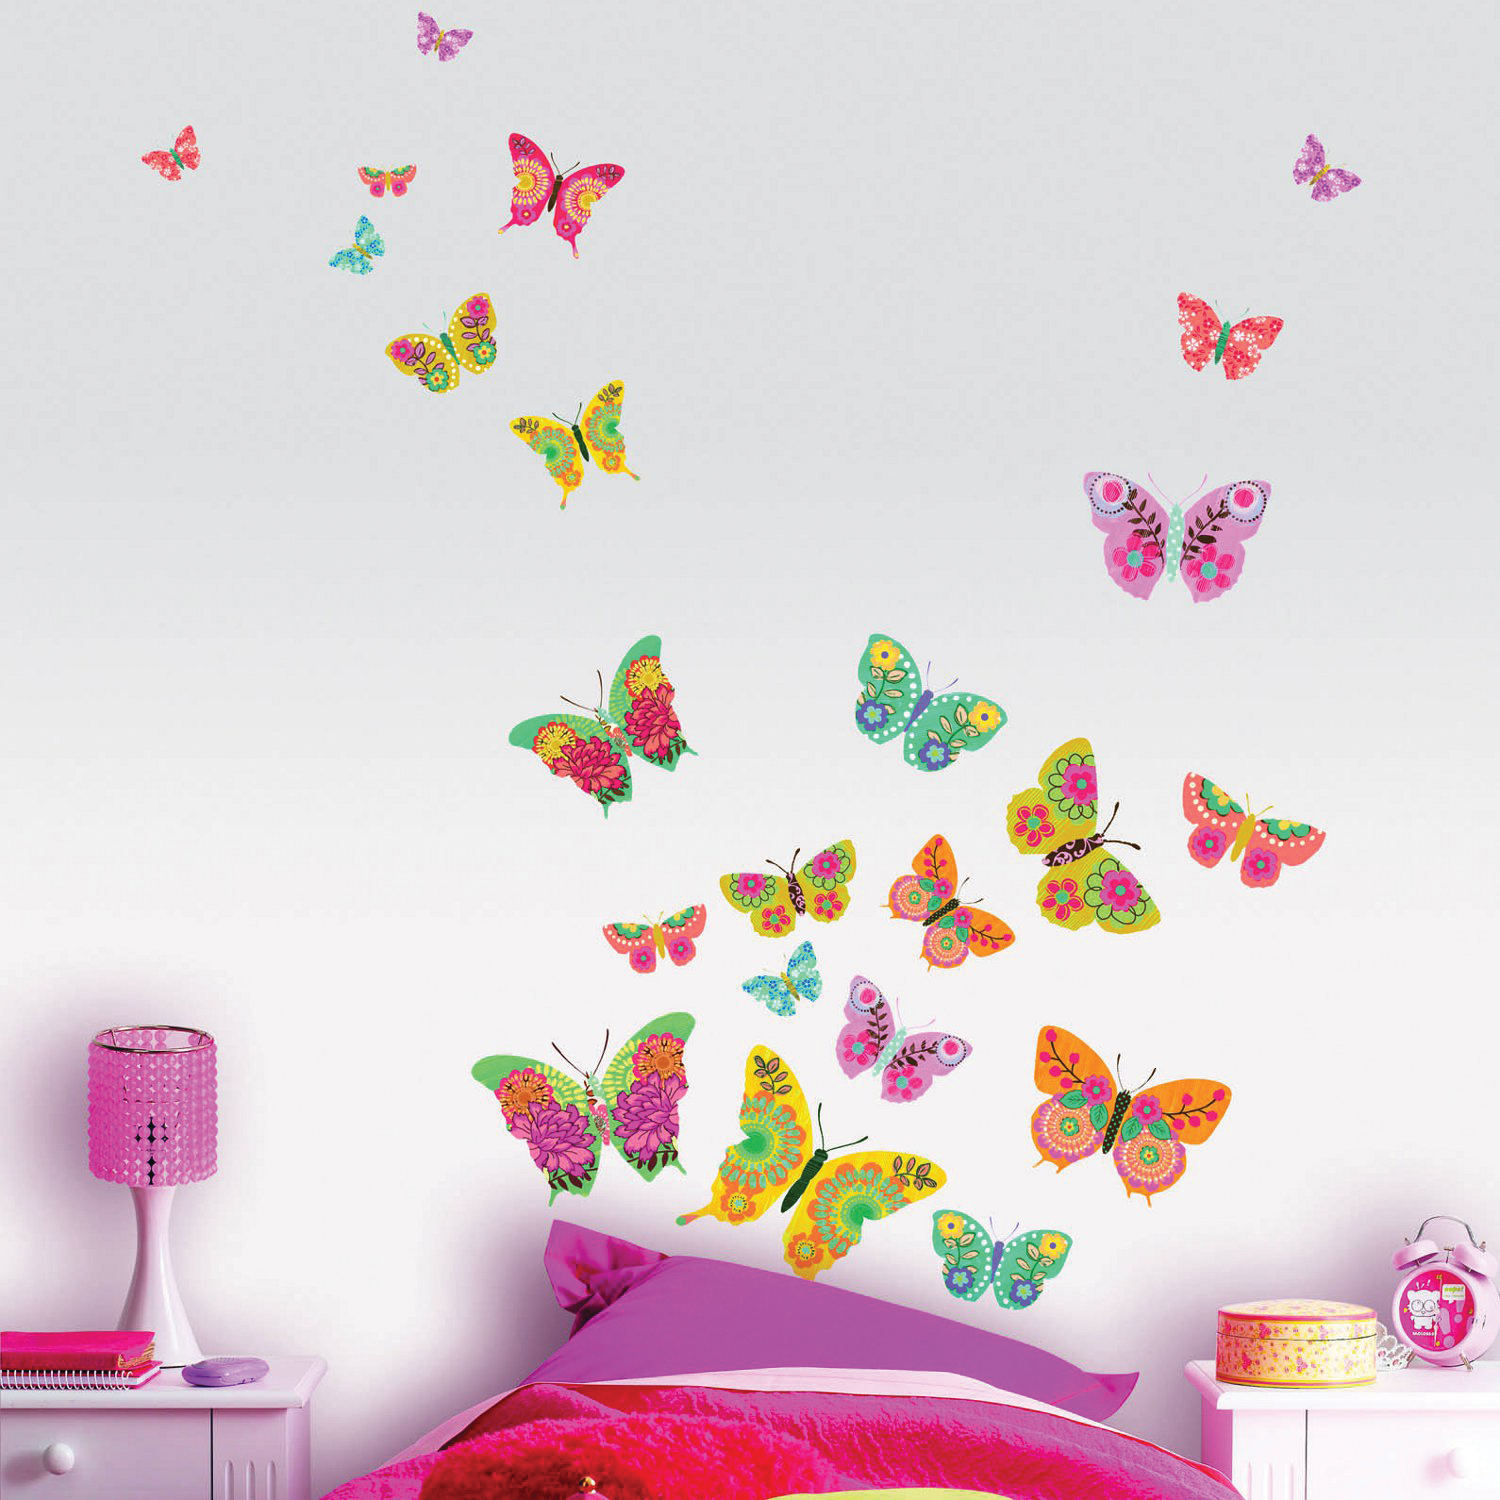 Le stickers une d co facile rapide pas ch re et originale d co et saveurs - Decoration chambre fille papillon ...